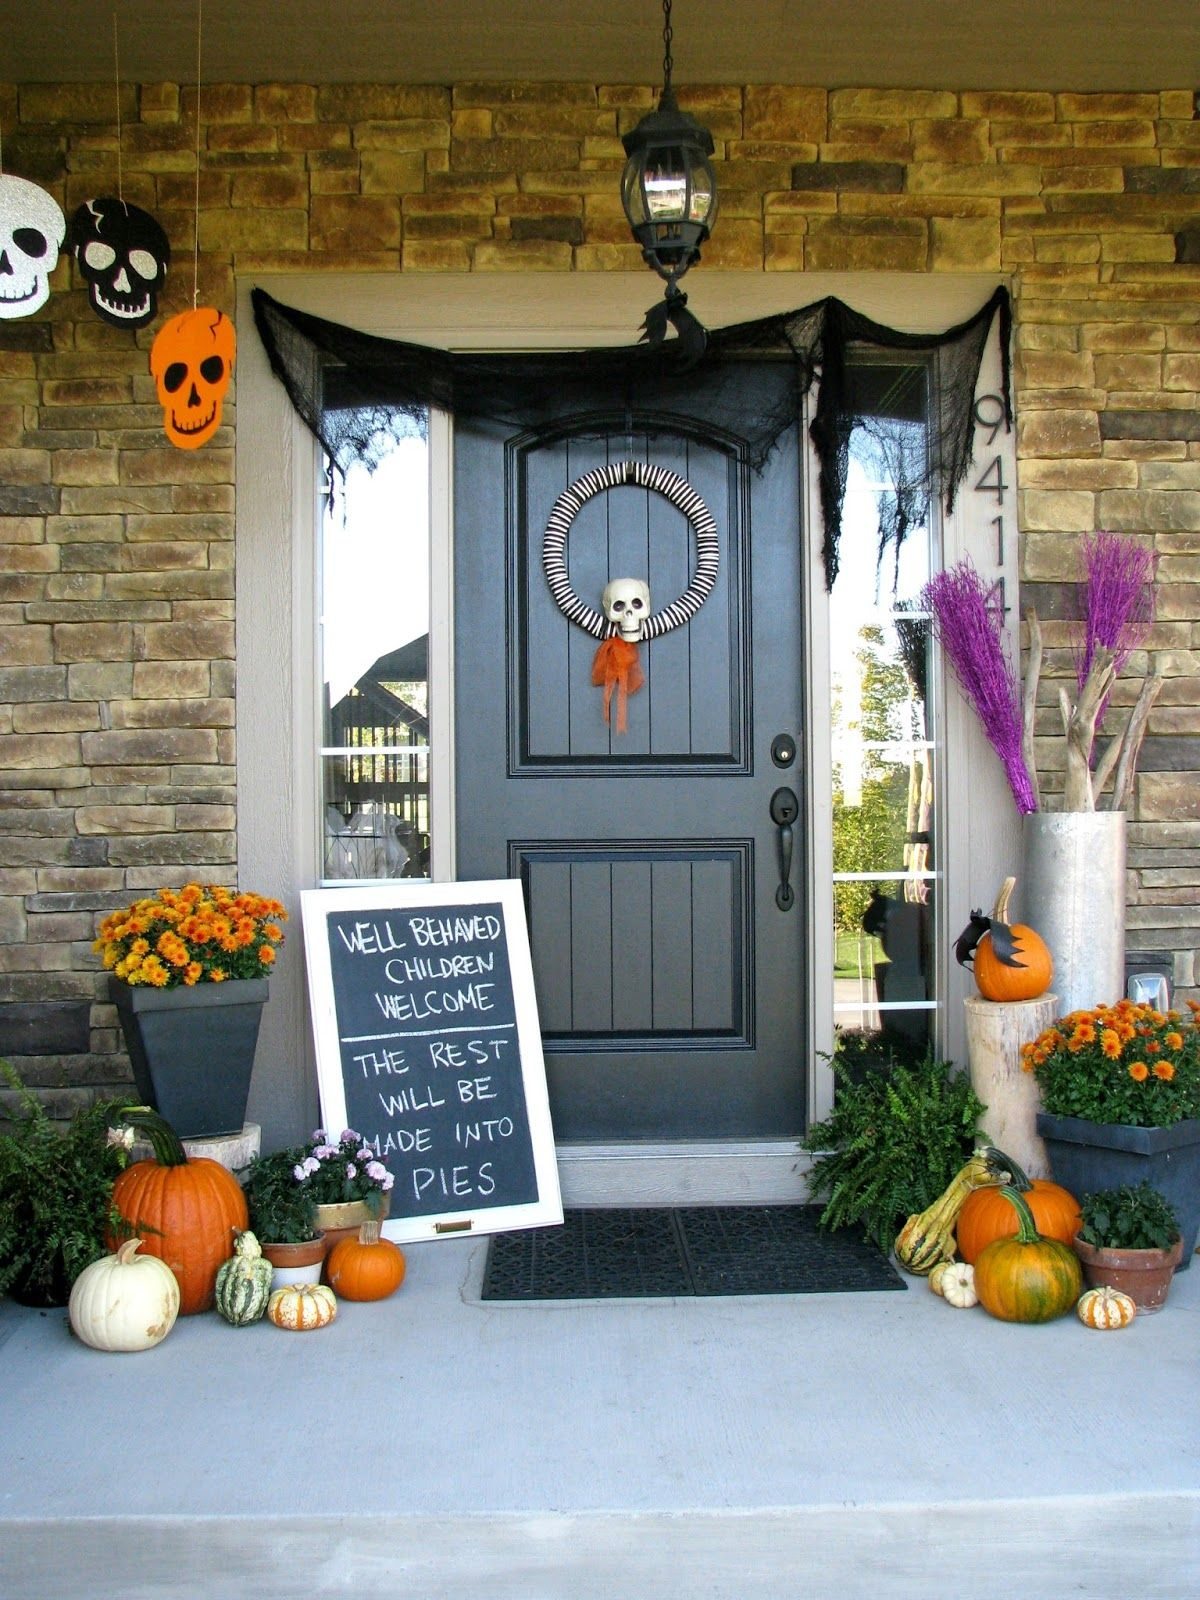 51 Chilling and Thrilling Halloween Porch Decorations Halloween - Scary Door Decorations For Halloween